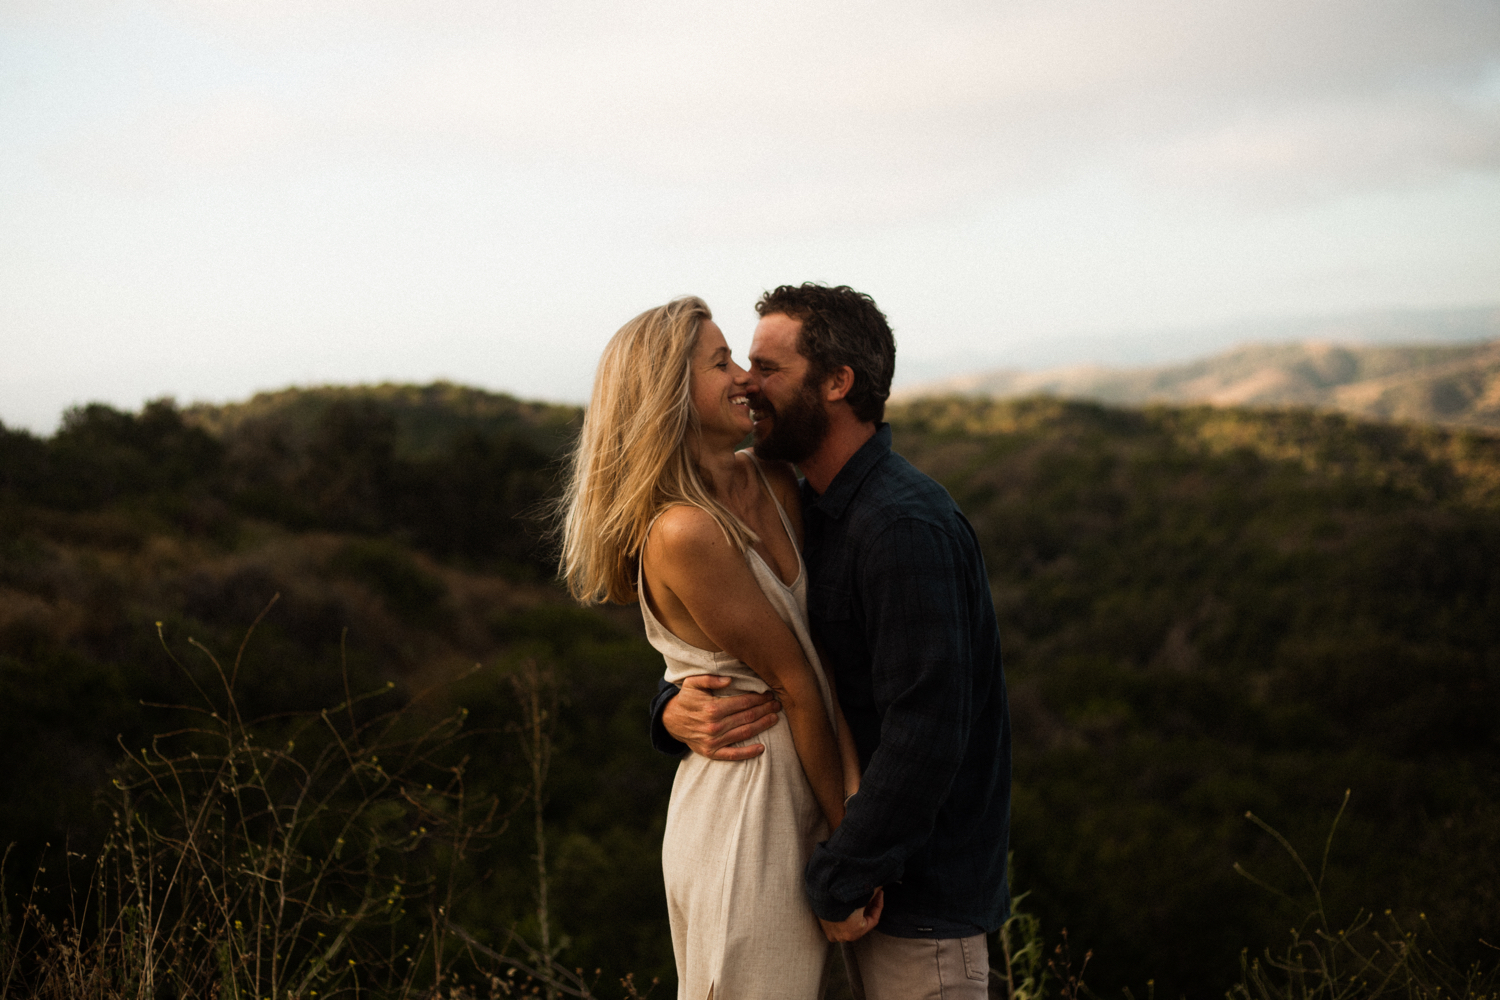 Engagement session shoot photos photography Orange County photographer nature film Talega Home session California42.jpg